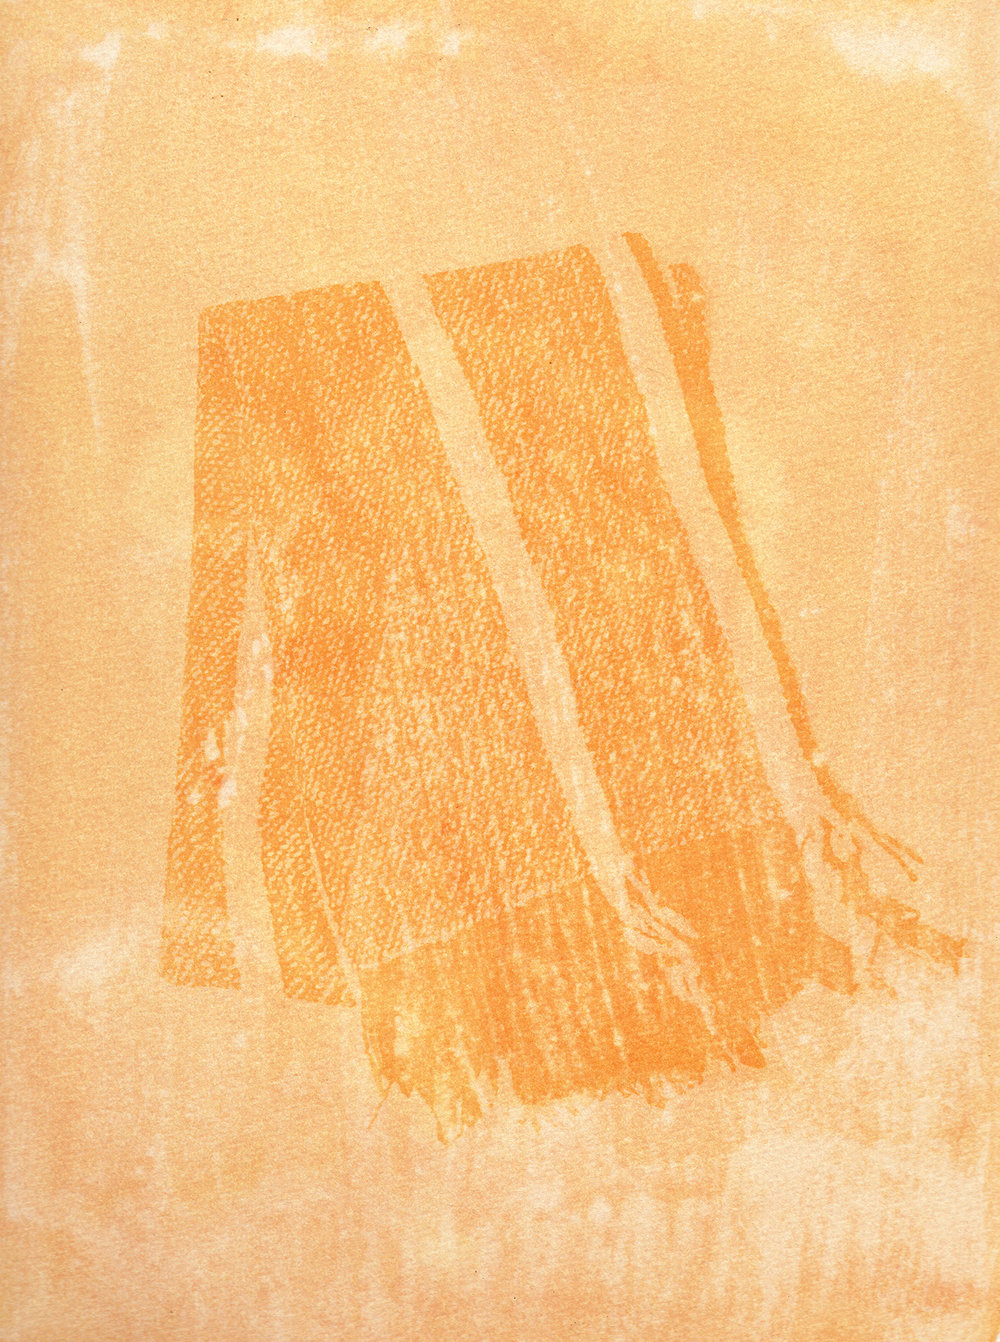 """Detail of a scarf made by the """"Hilanderas del Fin del Mundo"""", a group of women dedicated to retake traditions of embroidery and weaving by invoking local production against the advance of imports using natural raw materials produced in the island. Scan of an Anthotype made with natural dyes created with Turmeric. Photographer: Luján Agusti. Tierra del Fuego. April 15th, 2018"""